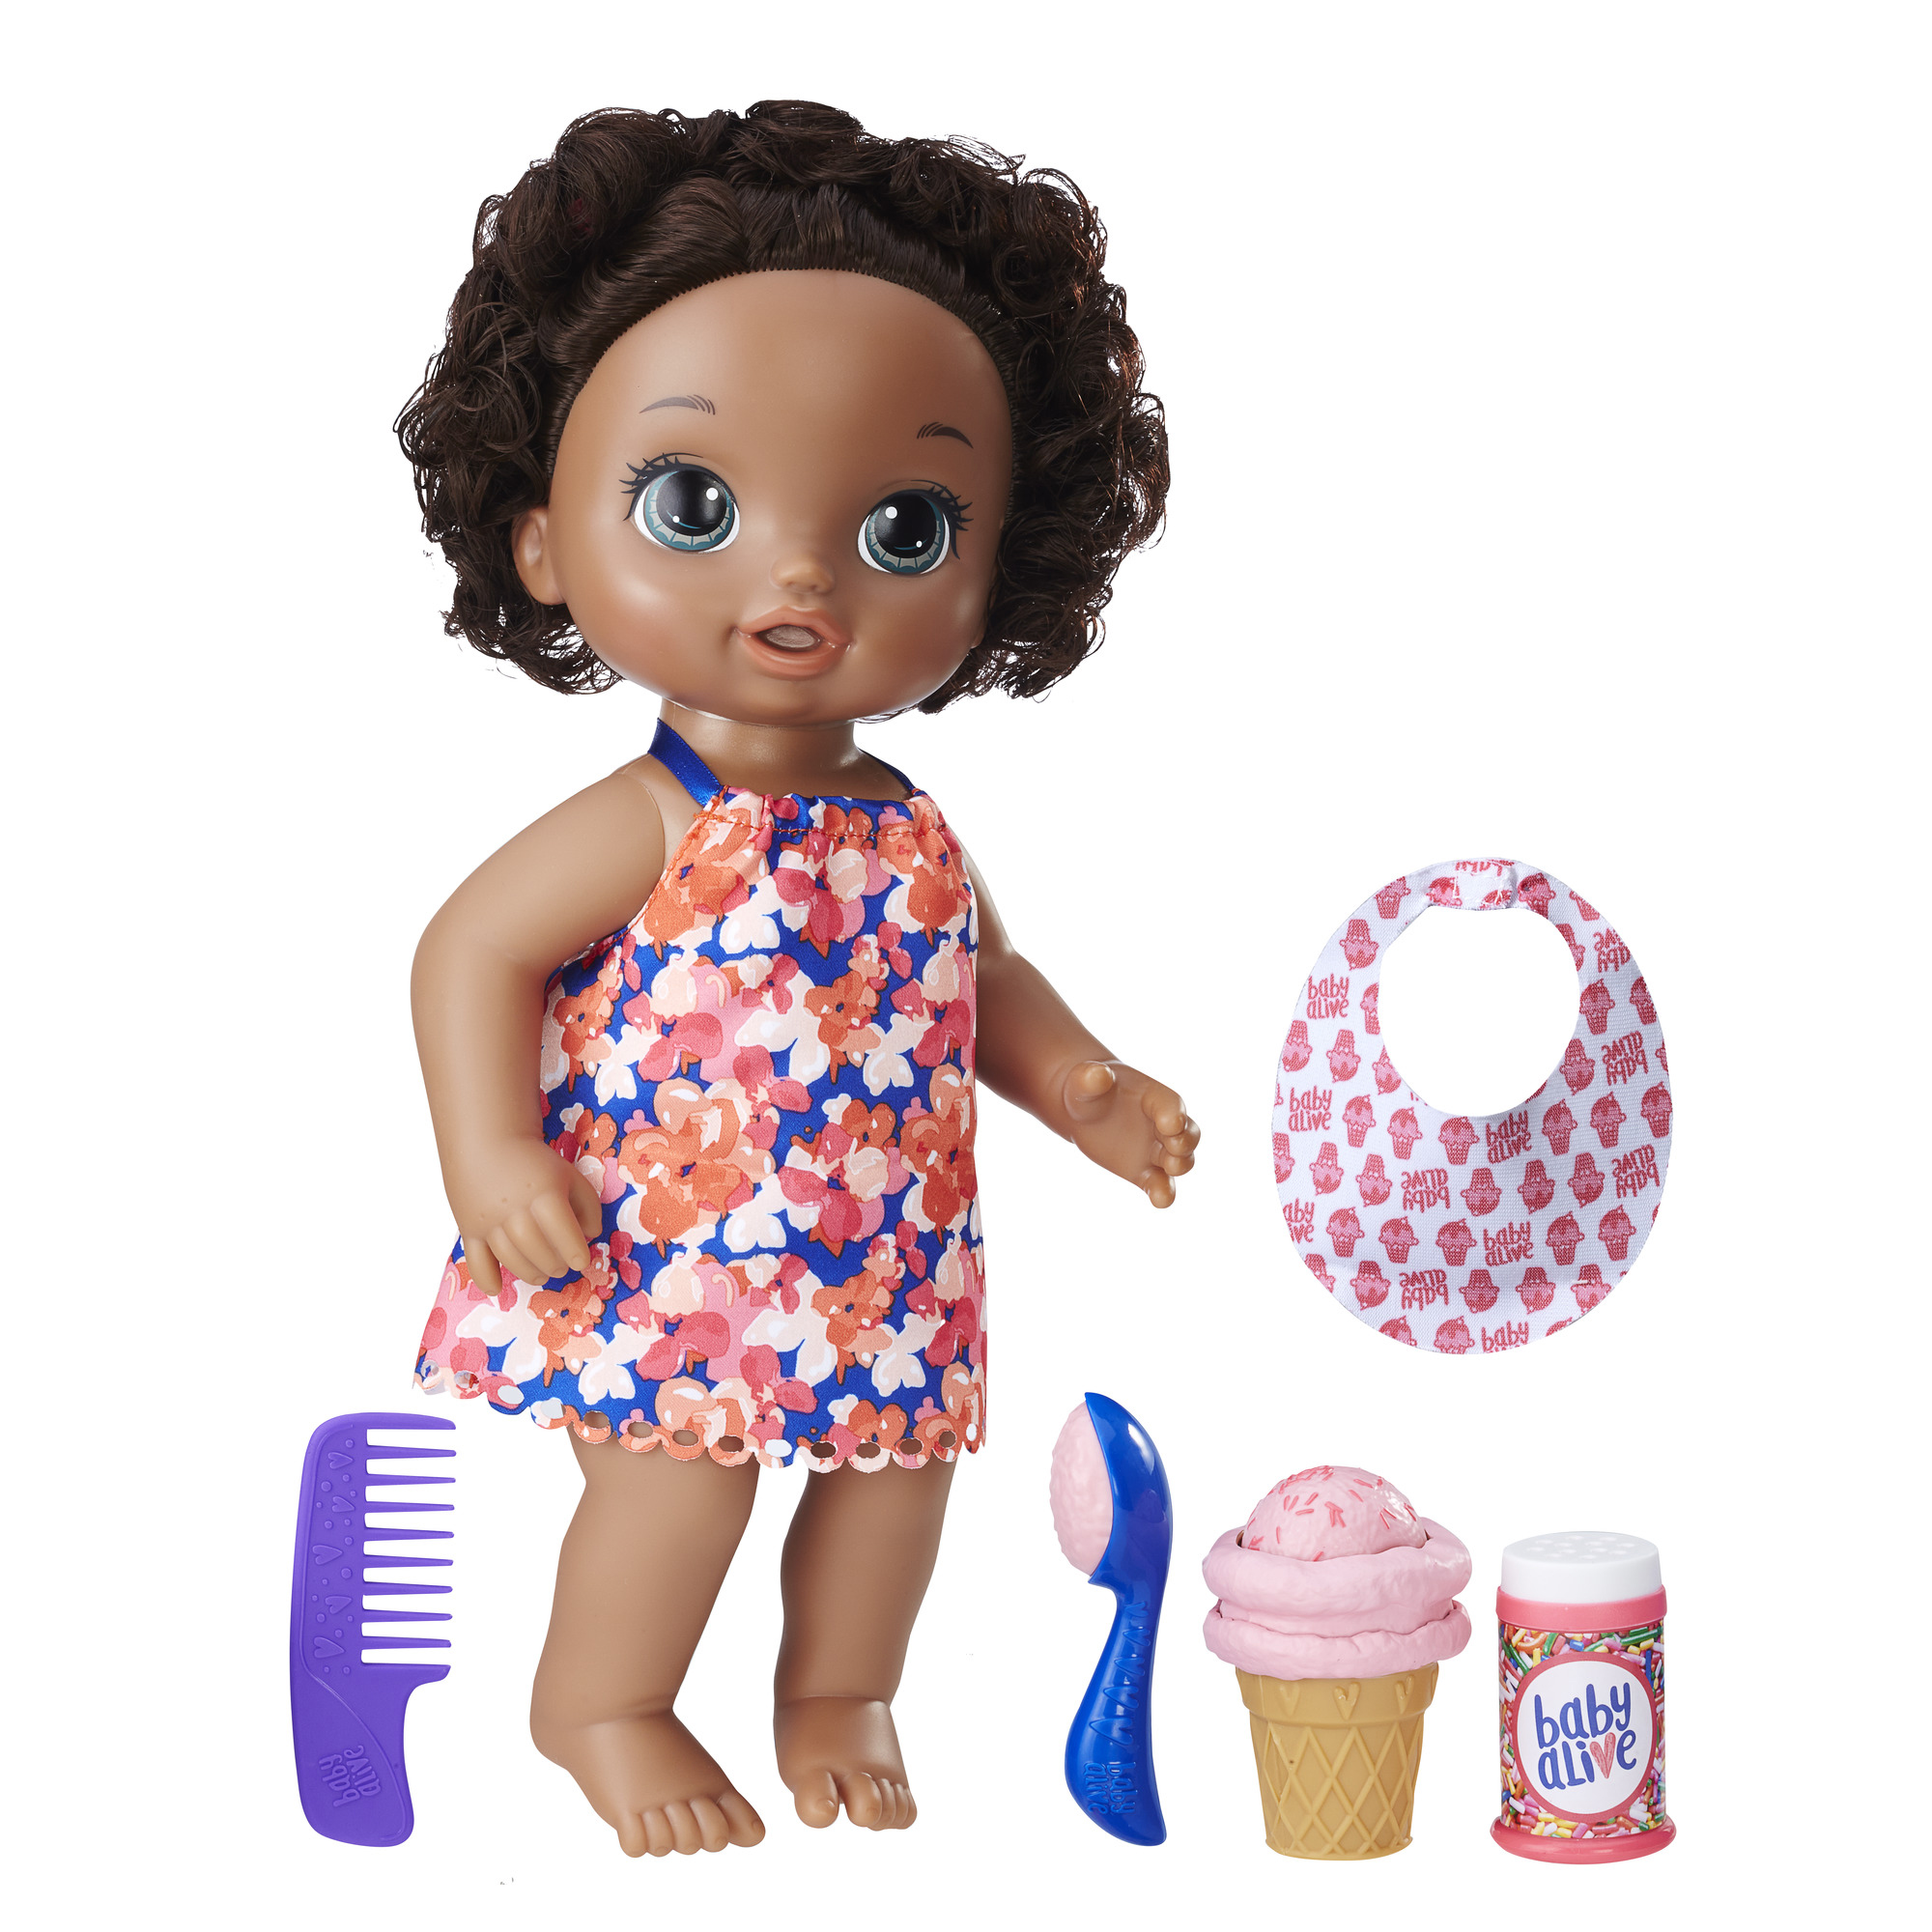 Baby Alive Magical Scoops Baby African American PartNumber: 004W009279563001P KsnValue: 9279563 MfgPartNumber: C1088AS00